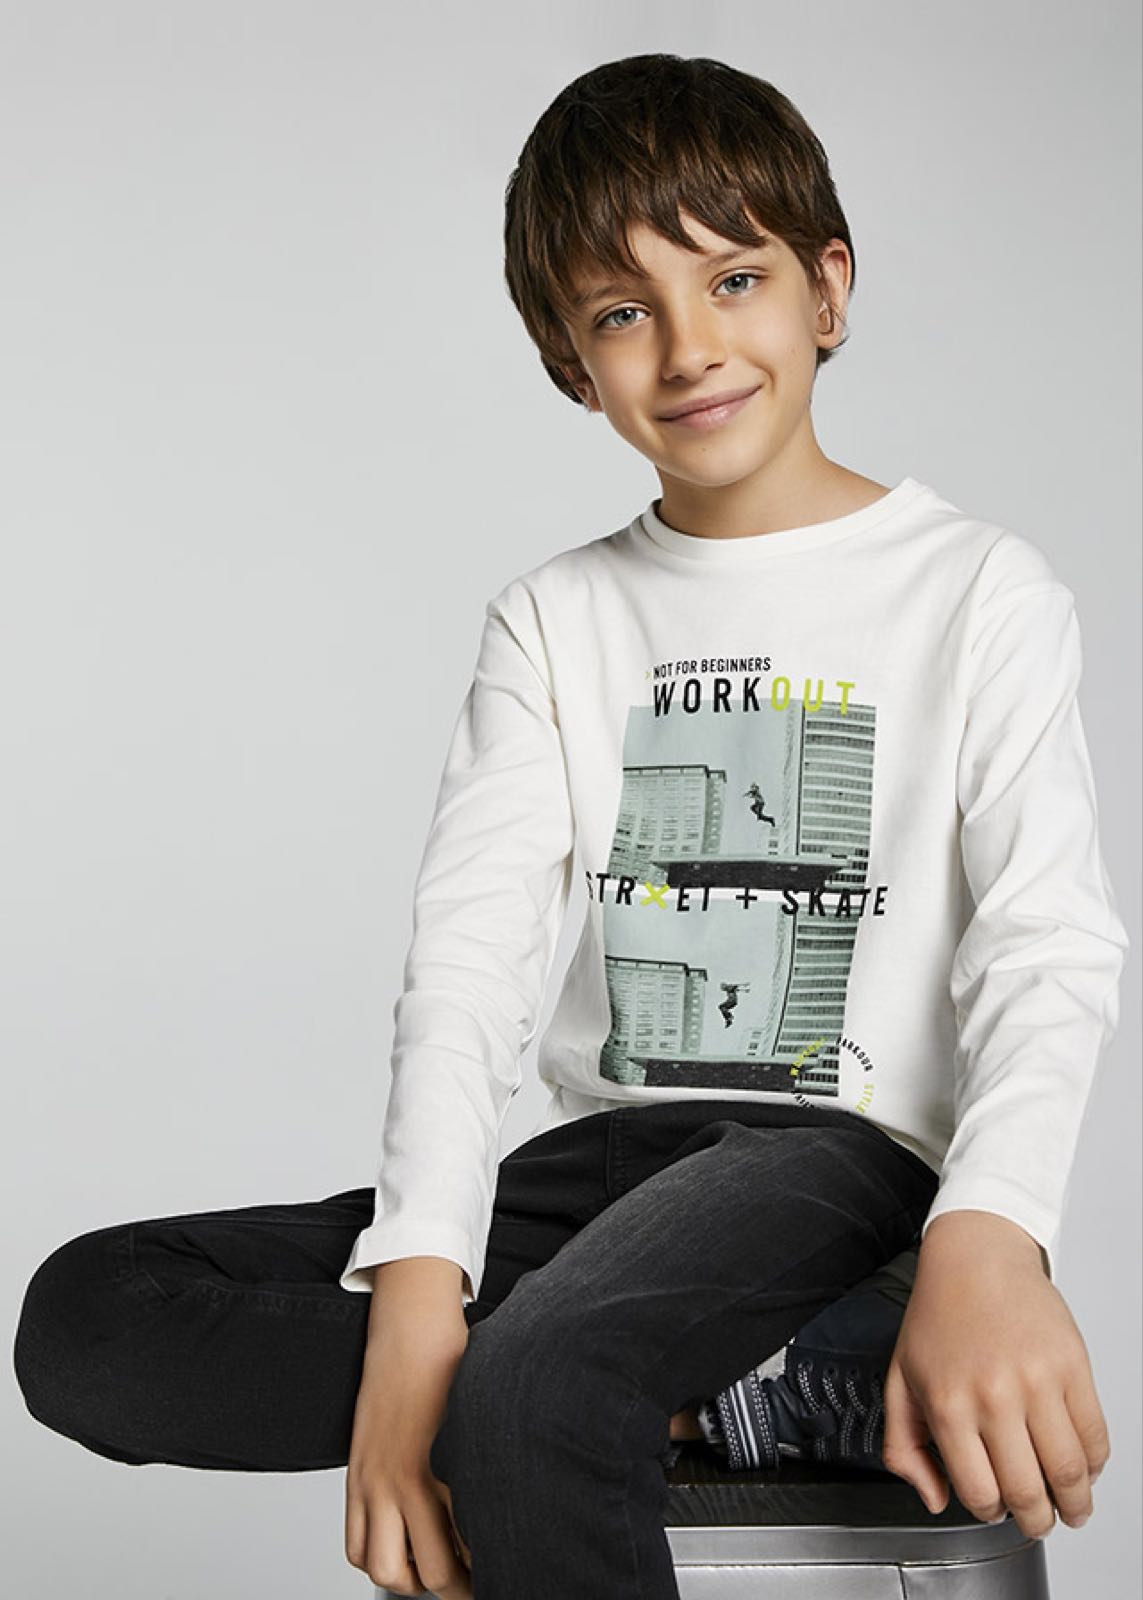 MAYORAL TEEN BOY Long Sleeve White 'Work Out' T-Shirt 7007-35